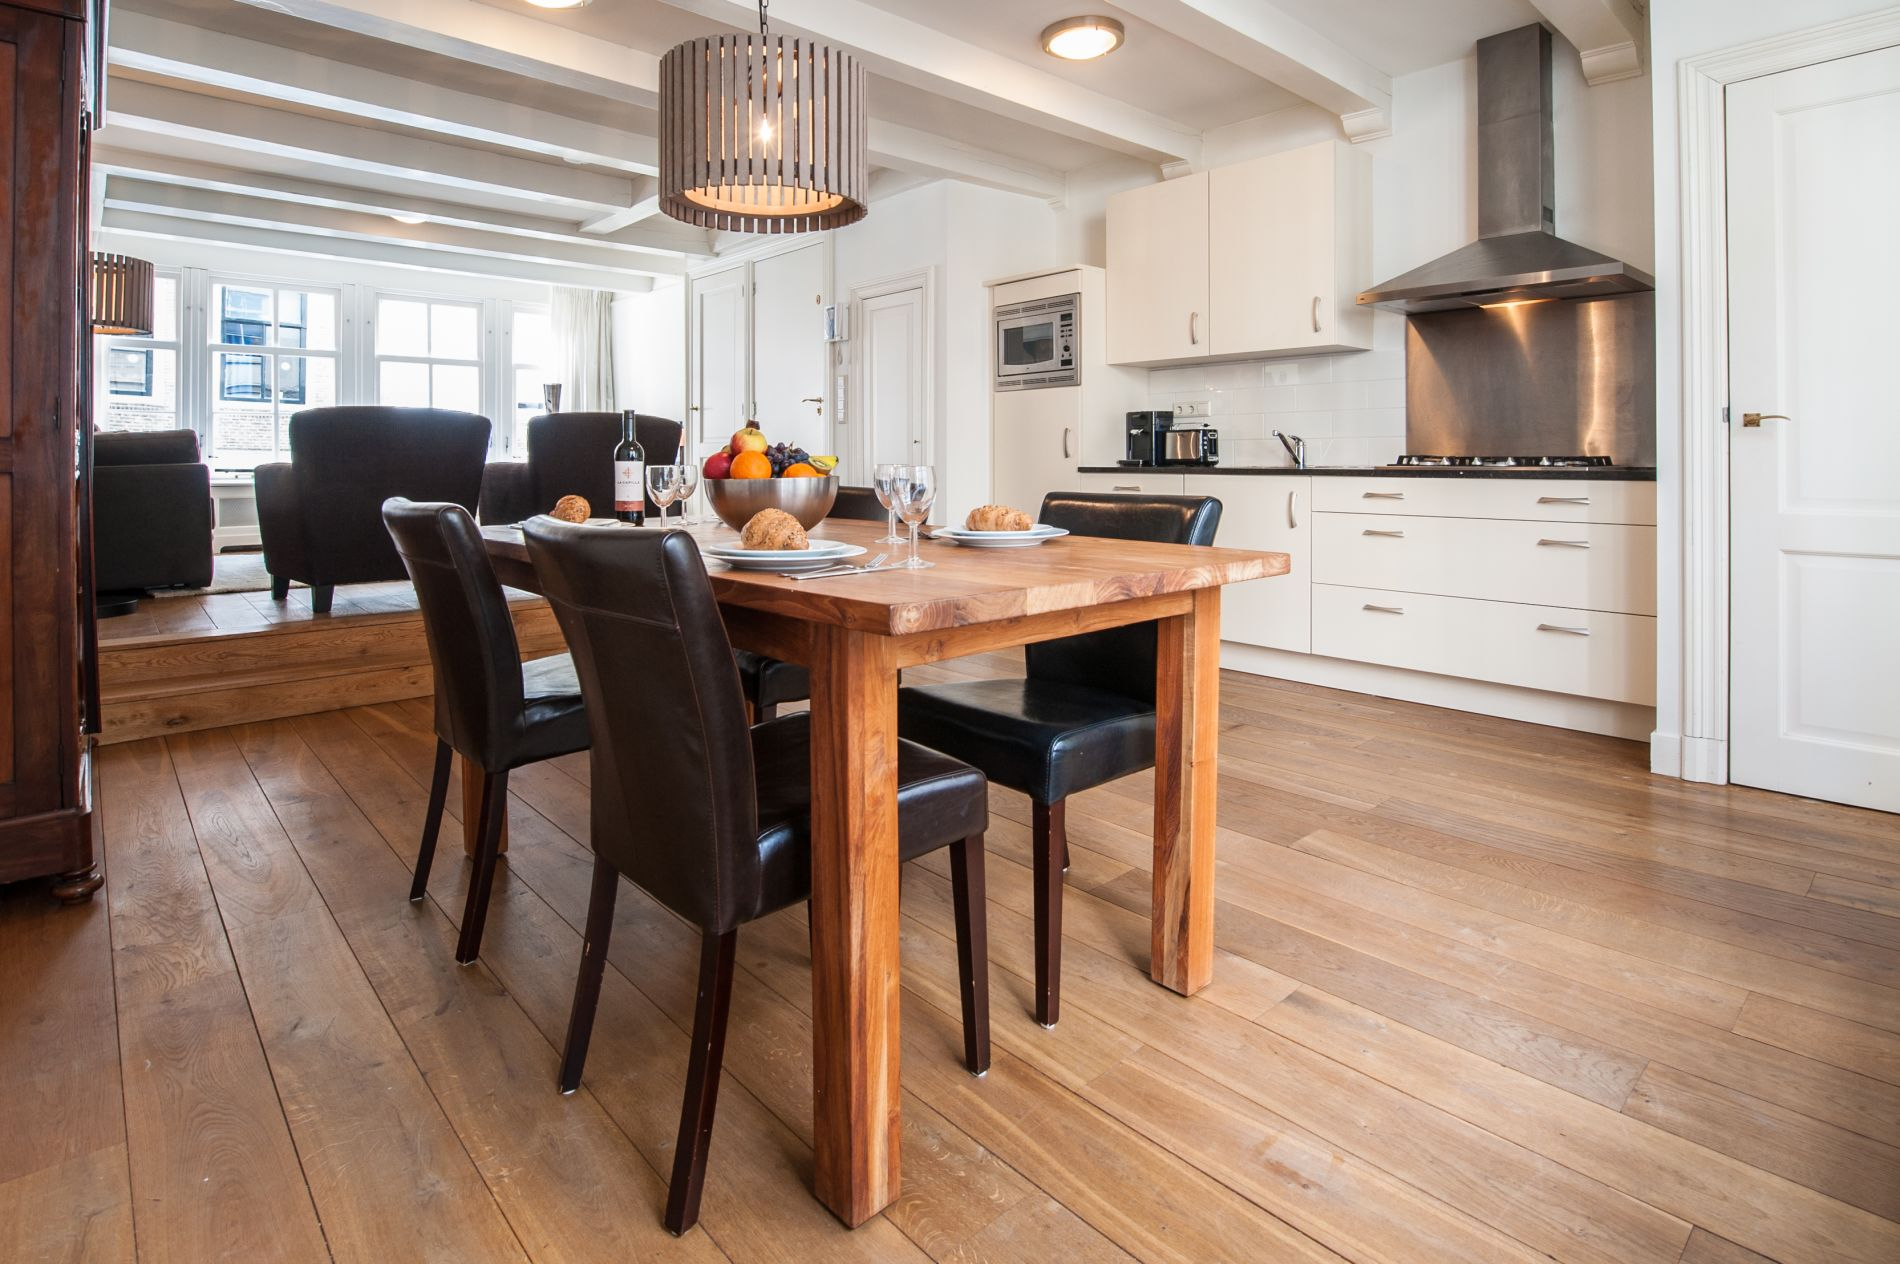 Serviced apartment that allows pets in Jordaan, Amsterdam